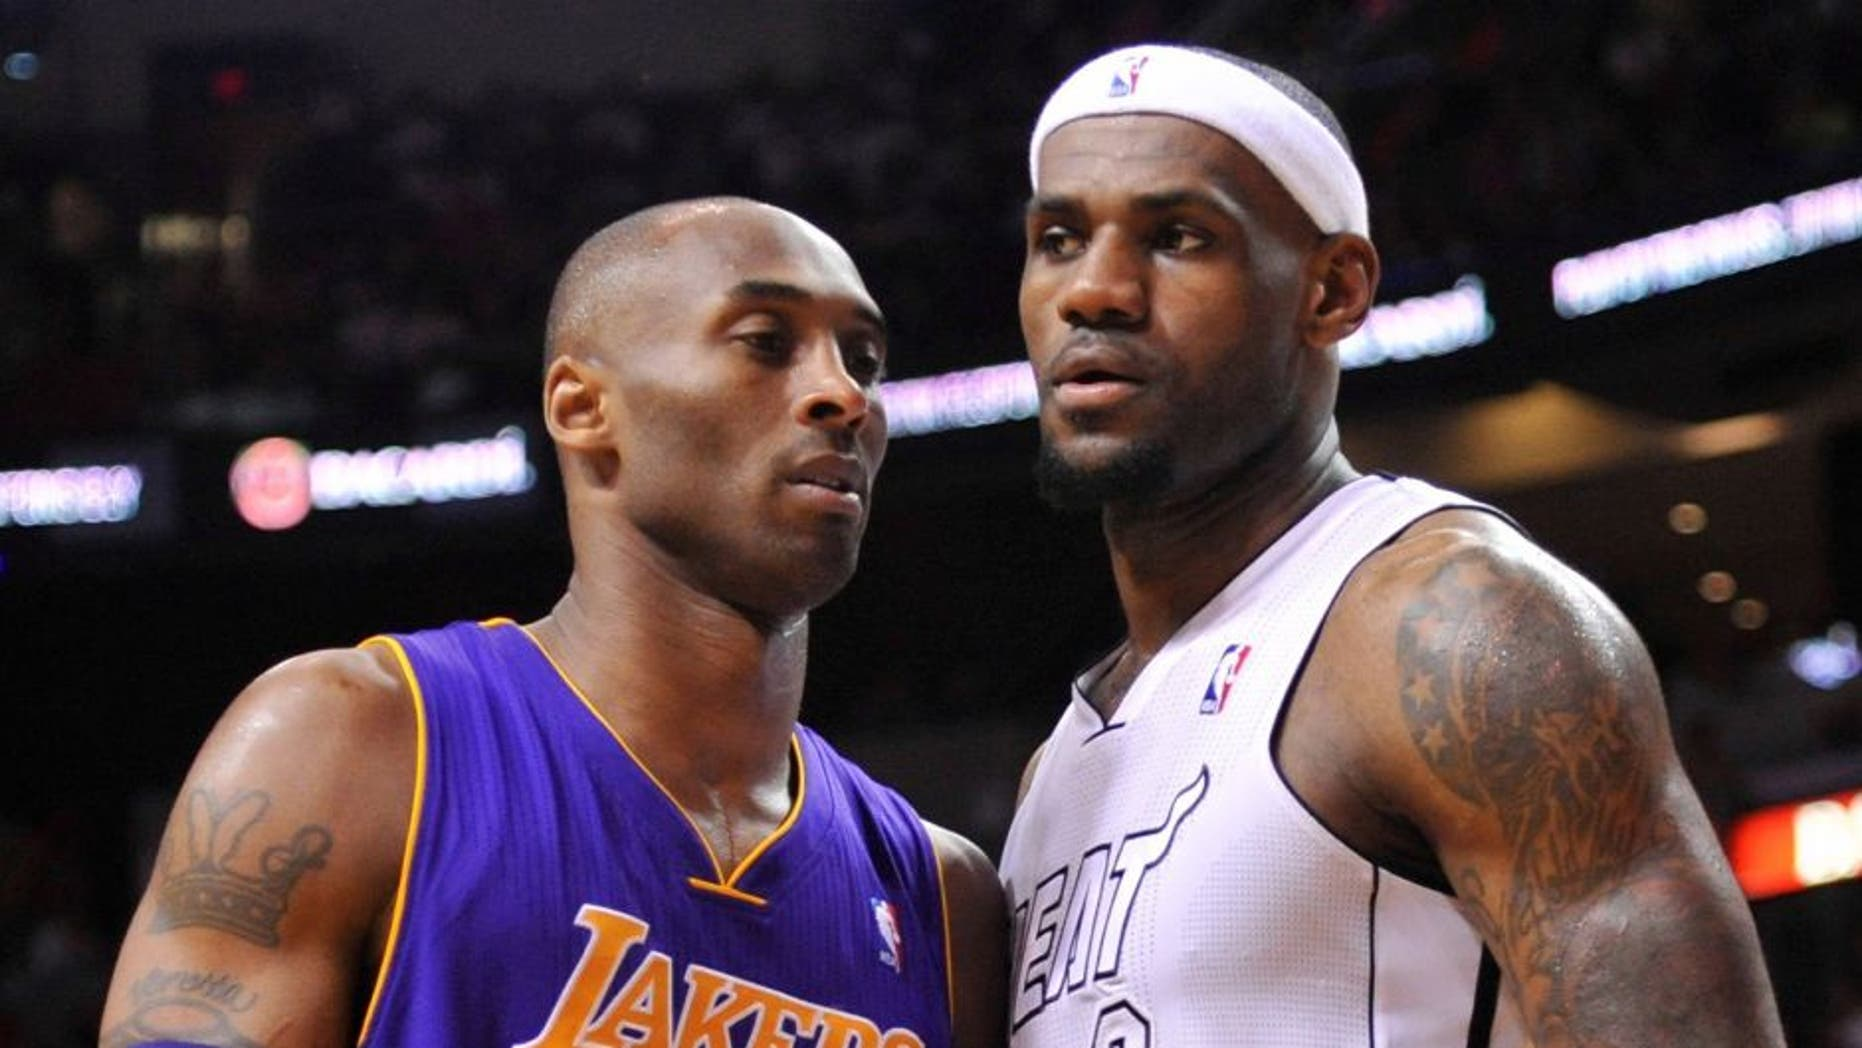 Feb 10, 2013; Miami, FL, USA; Los Angeles Lakers shooting guard Kobe Bryant (24) and Miami Heat small forward LeBron James (6) during the first half at American Airlines Arena. Mandatory Credit: Steve Mitchell-USA TODAY Sports